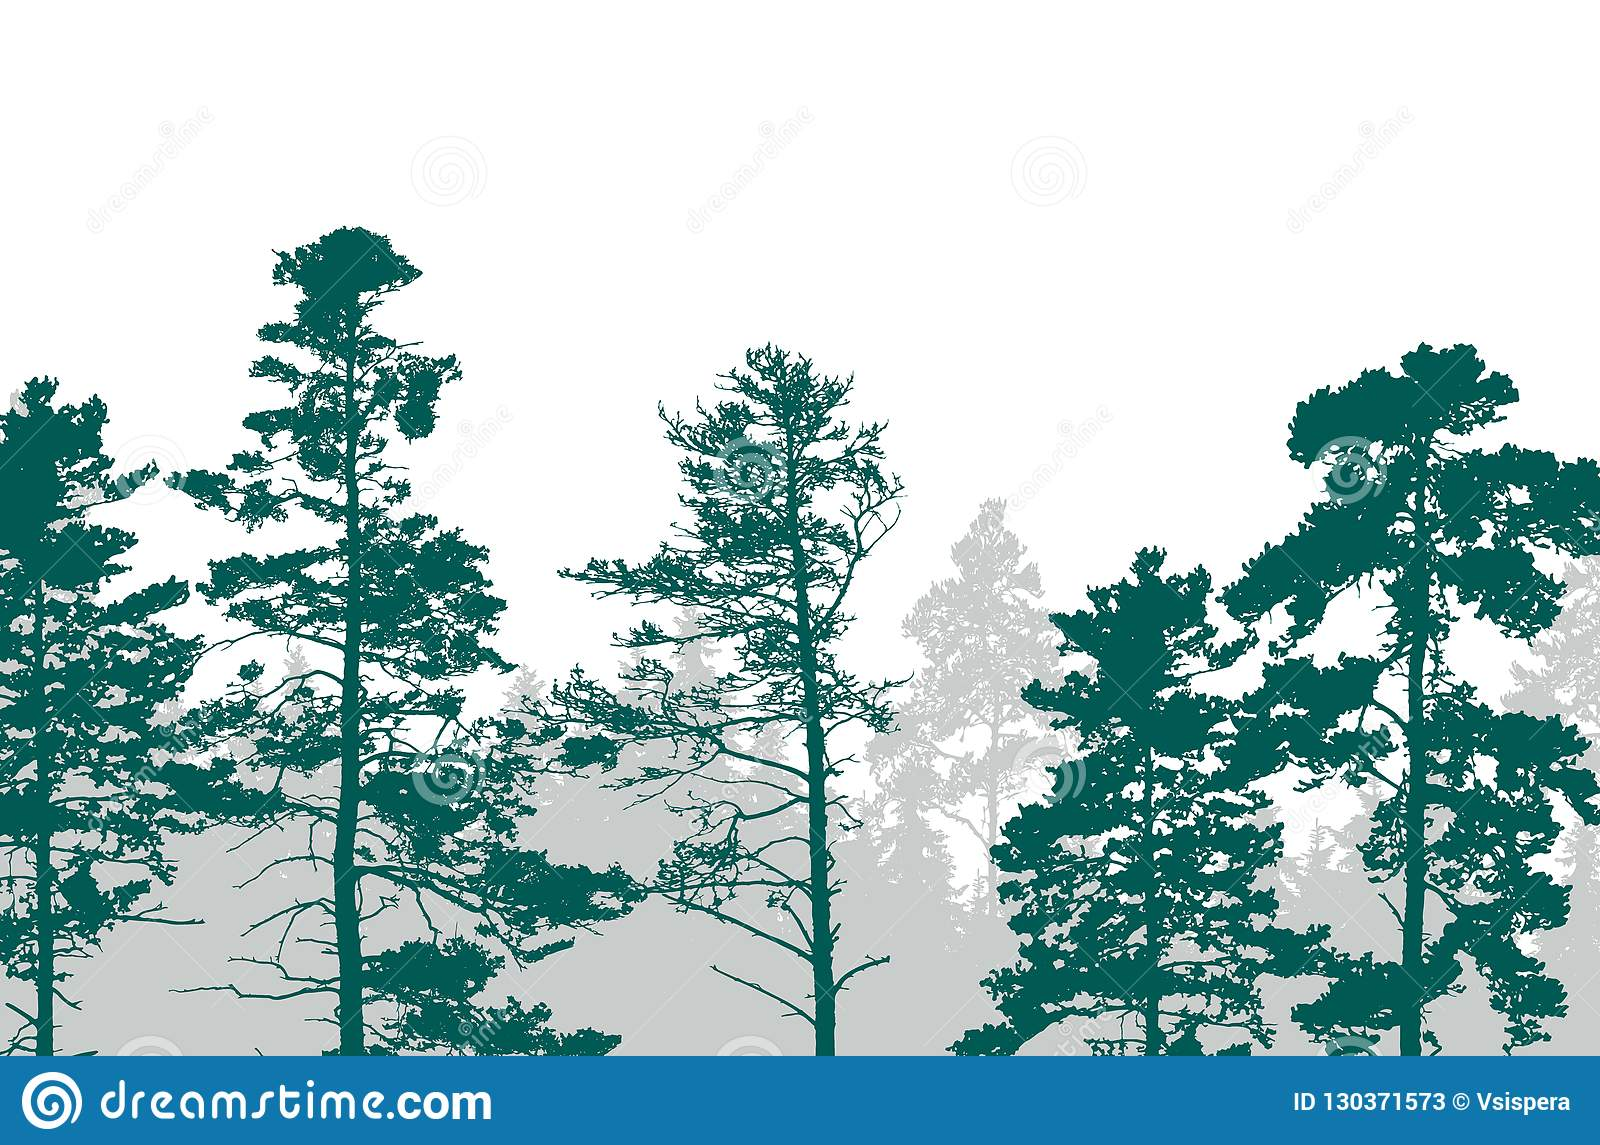 Realistic illustration of a green forest with coniferous trees w